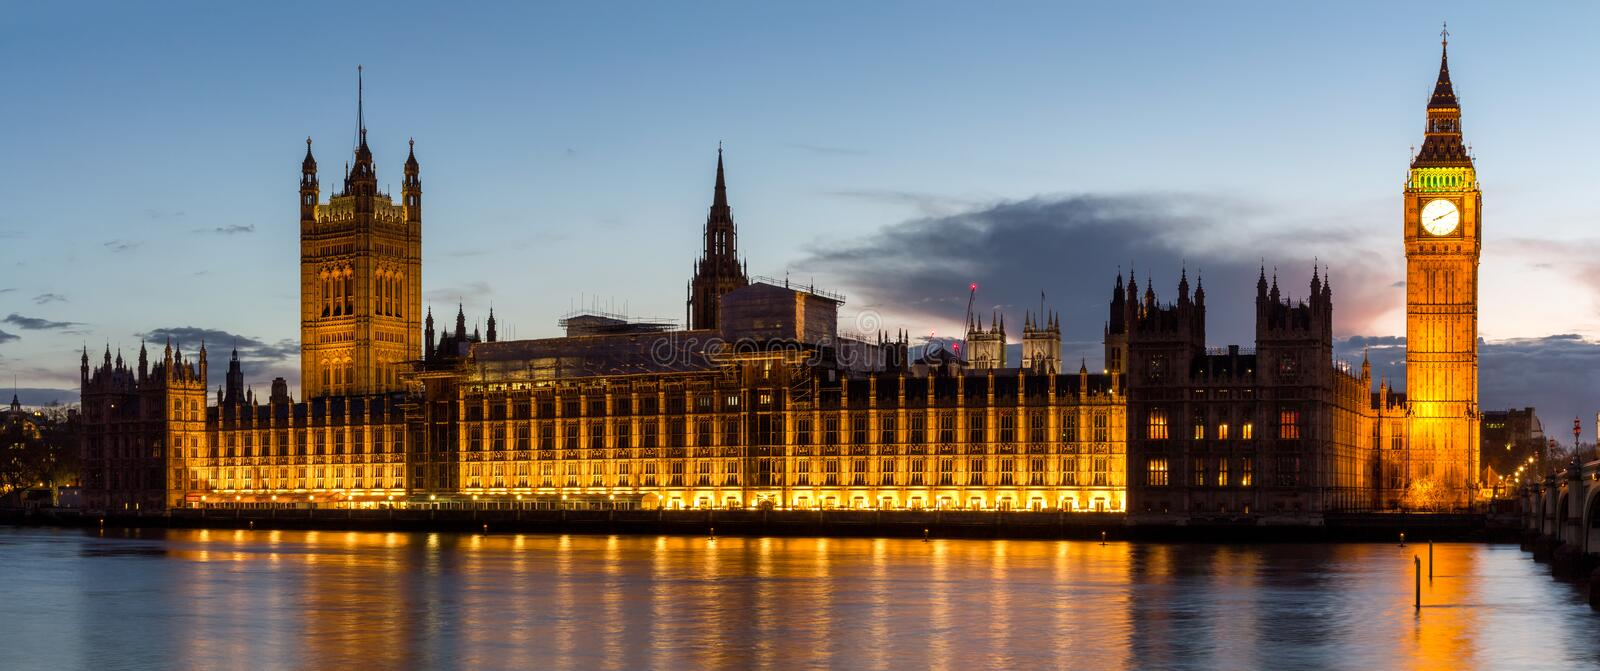 Panorama of Big Ben and House of Parliament at River Thames International Landmark of London England United Kingdom at Dusk royalty free stock photography